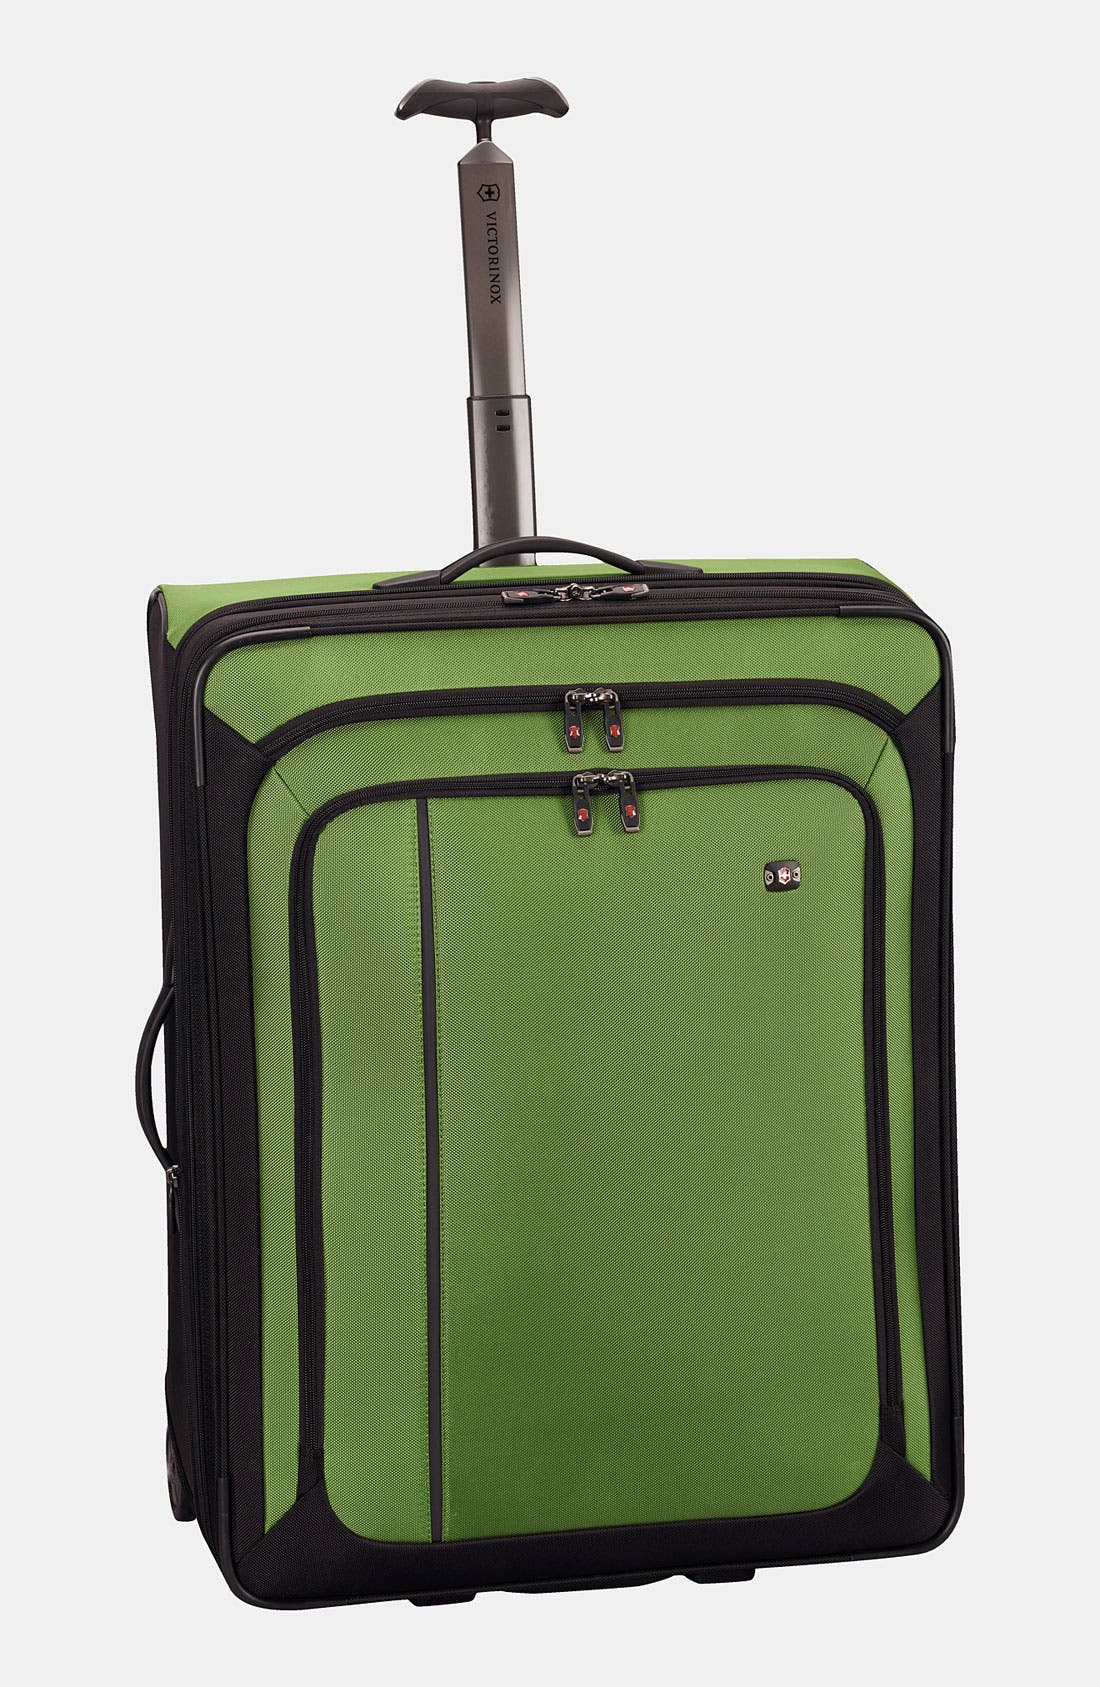 Alternate Image 1 Selected - Victorinox Swiss Army® 'Werks - Traveler' Rolling Packing Case (27 Inch)